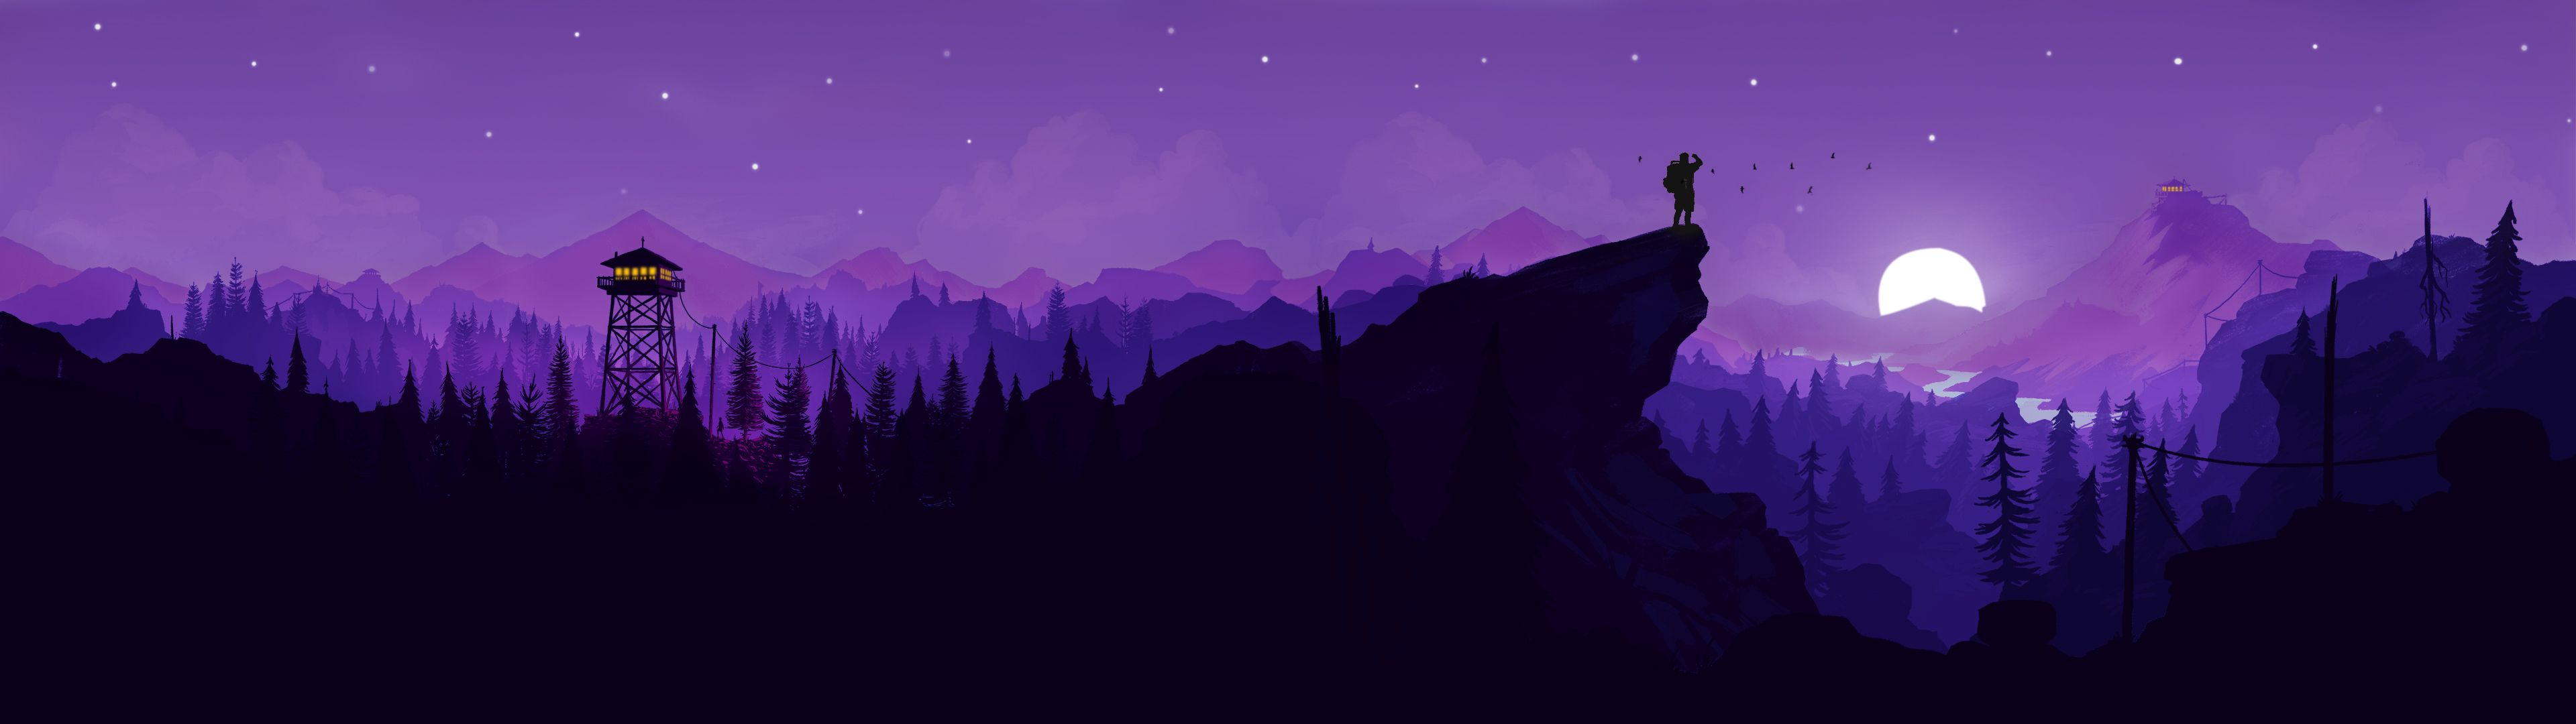 Played Around With The Firewatch Art And Made This Pretty Cool Dual Monitor Wallpaper 3840x1080 Dual Monitor Wallpaper 3840x1080 Wallpaper Wallpaper